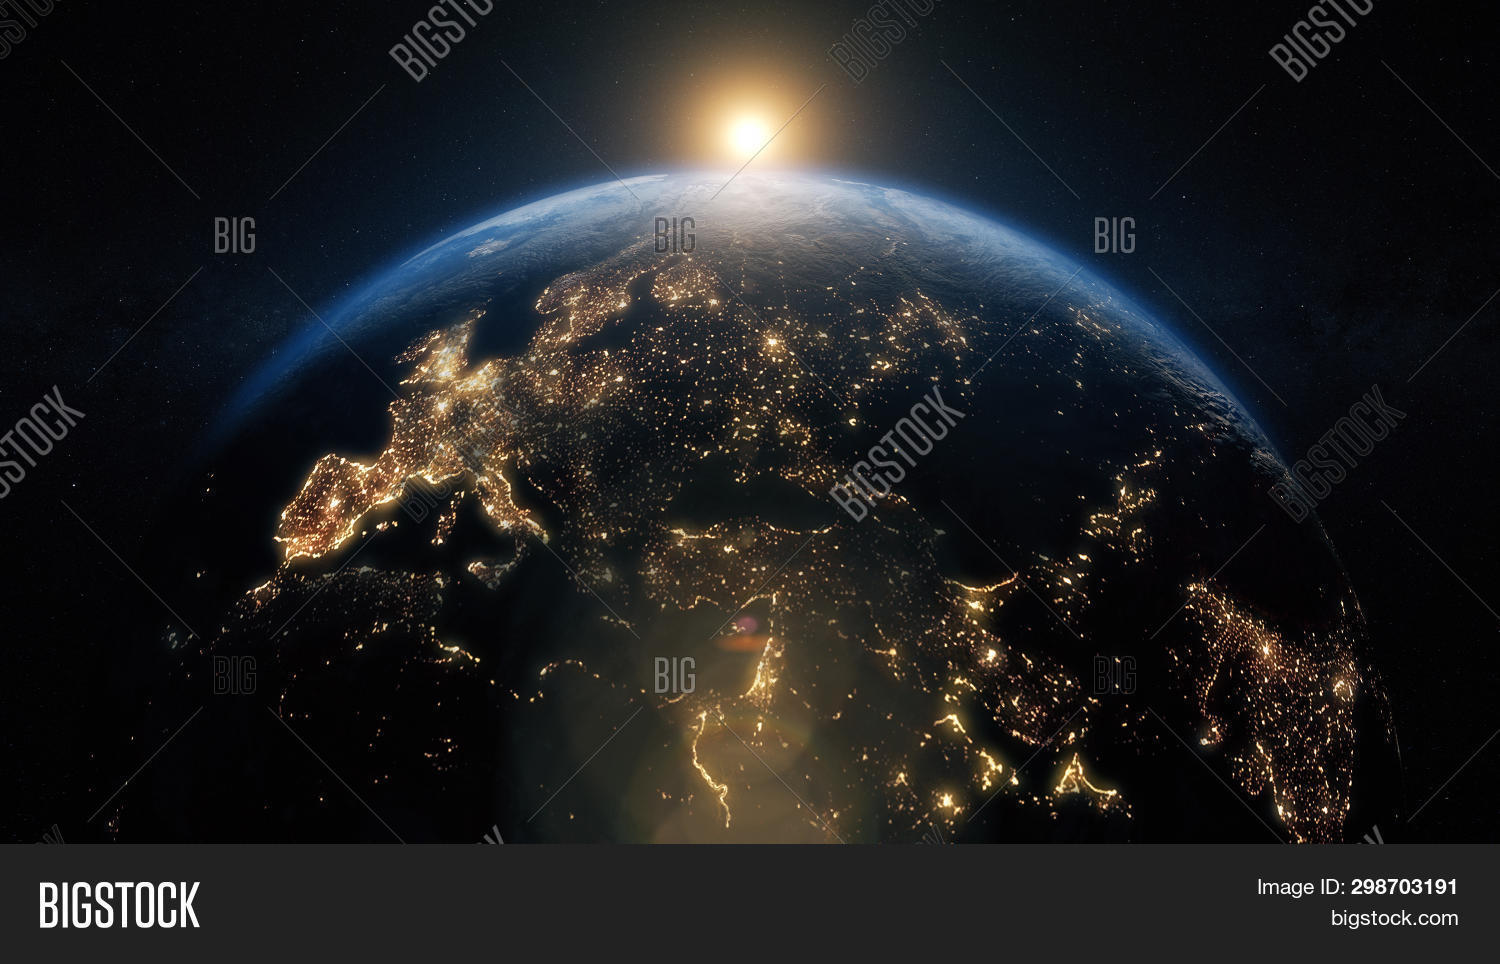 abstract,america,astronomy,background,black,blue,business,city,connection,cosmos,digital,earth,east,europe,furnished,future,galaxy,geography,global,globe,gold,internet,korea,light,map,moon,nature,night,north,ocean,orbit,planet,satellite,saudi,science,sea,south,space,stars,sun,sunrise,surface,technology,travel,universe,view,wallpaper,world